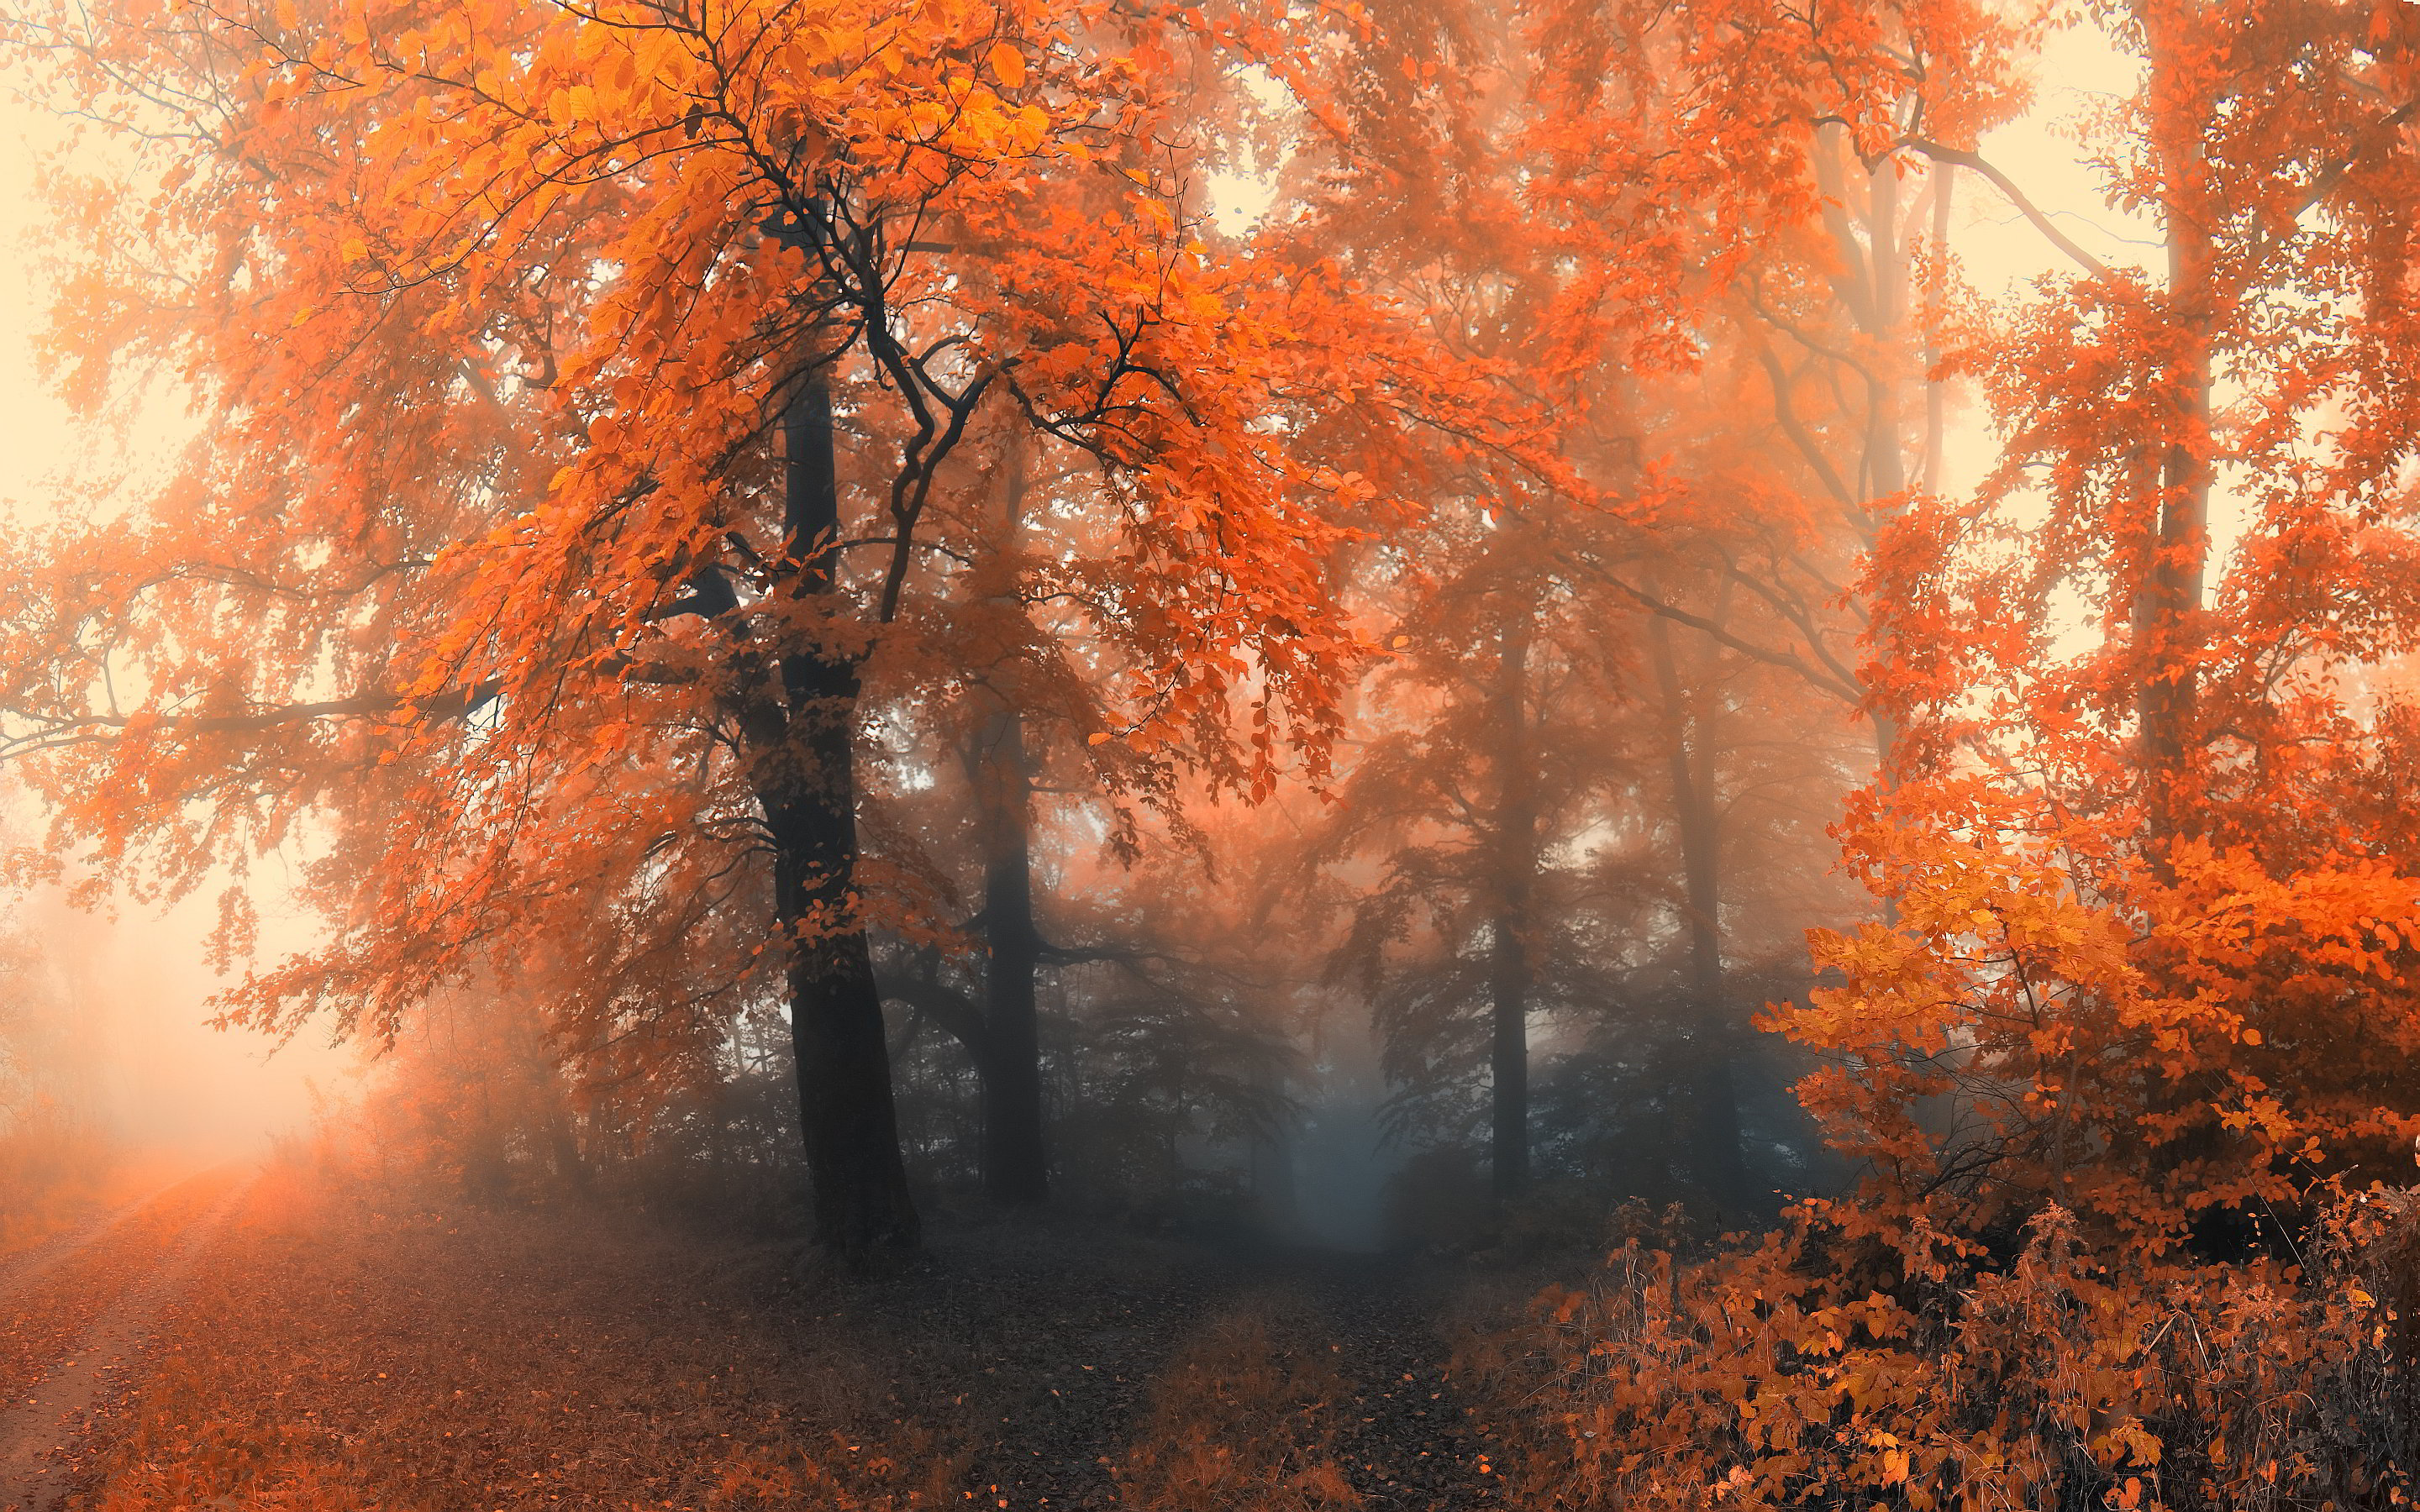 Autumn forest mist